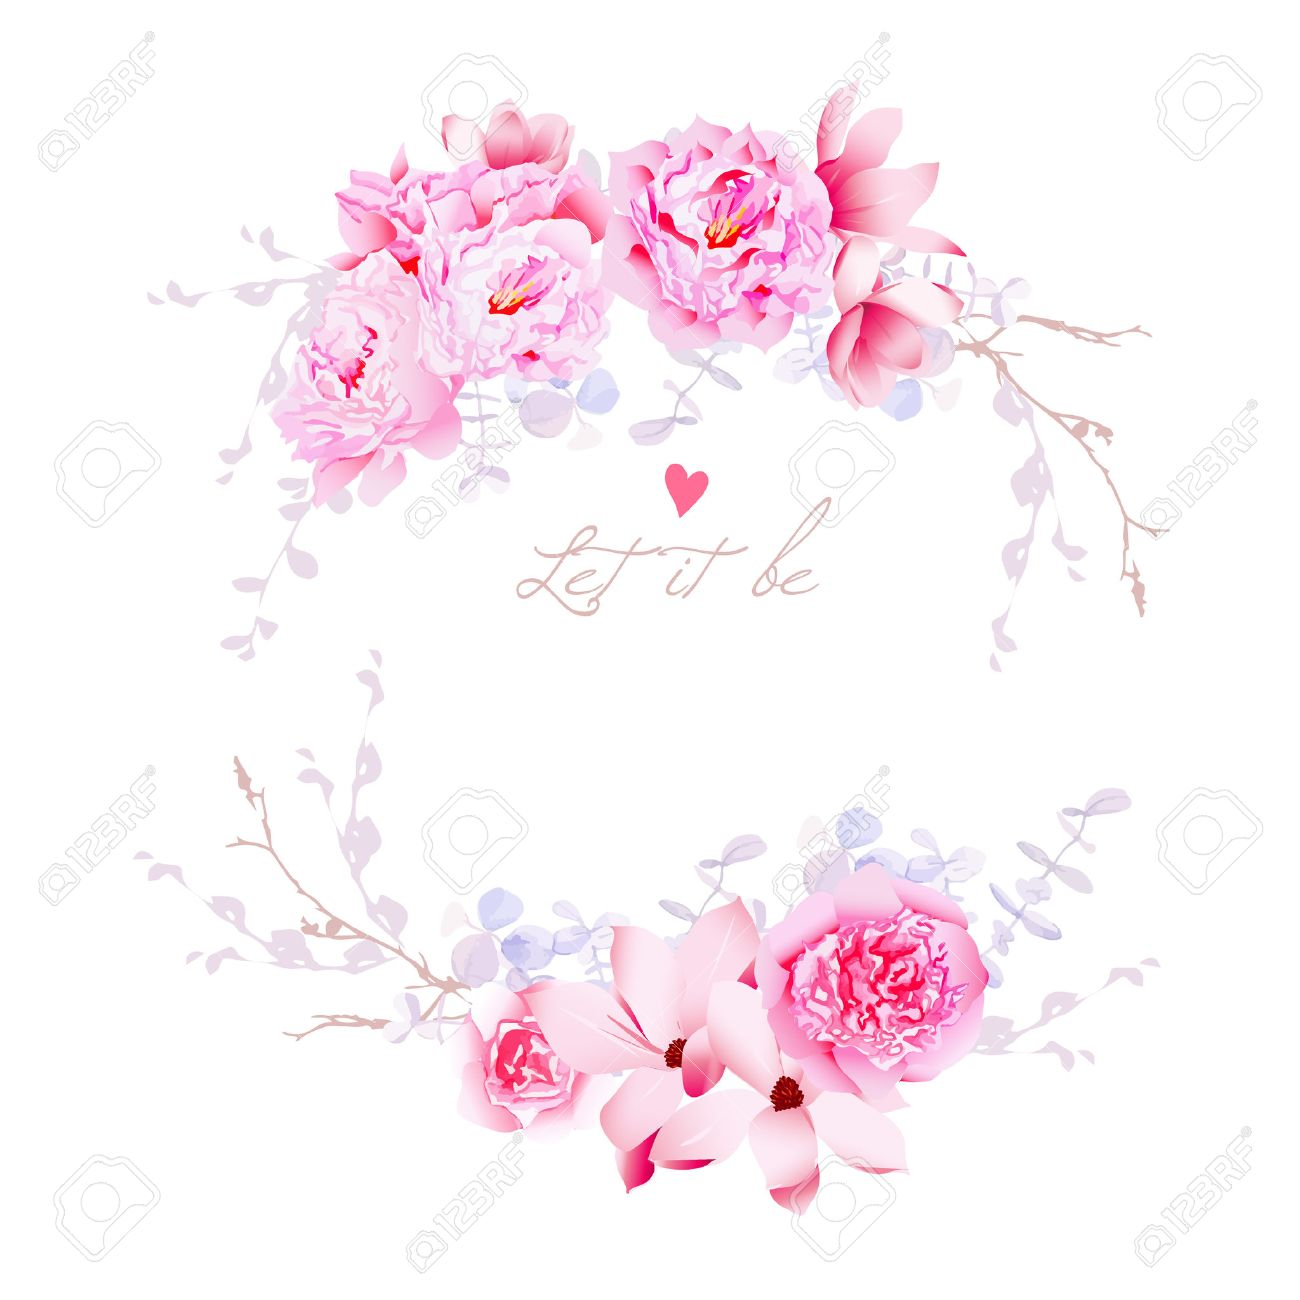 Spring magnolia and peonies vector frame gentle flowers wedding spring magnolia and peonies vector frame gentle flowers wedding template all elements are isolated maxwellsz